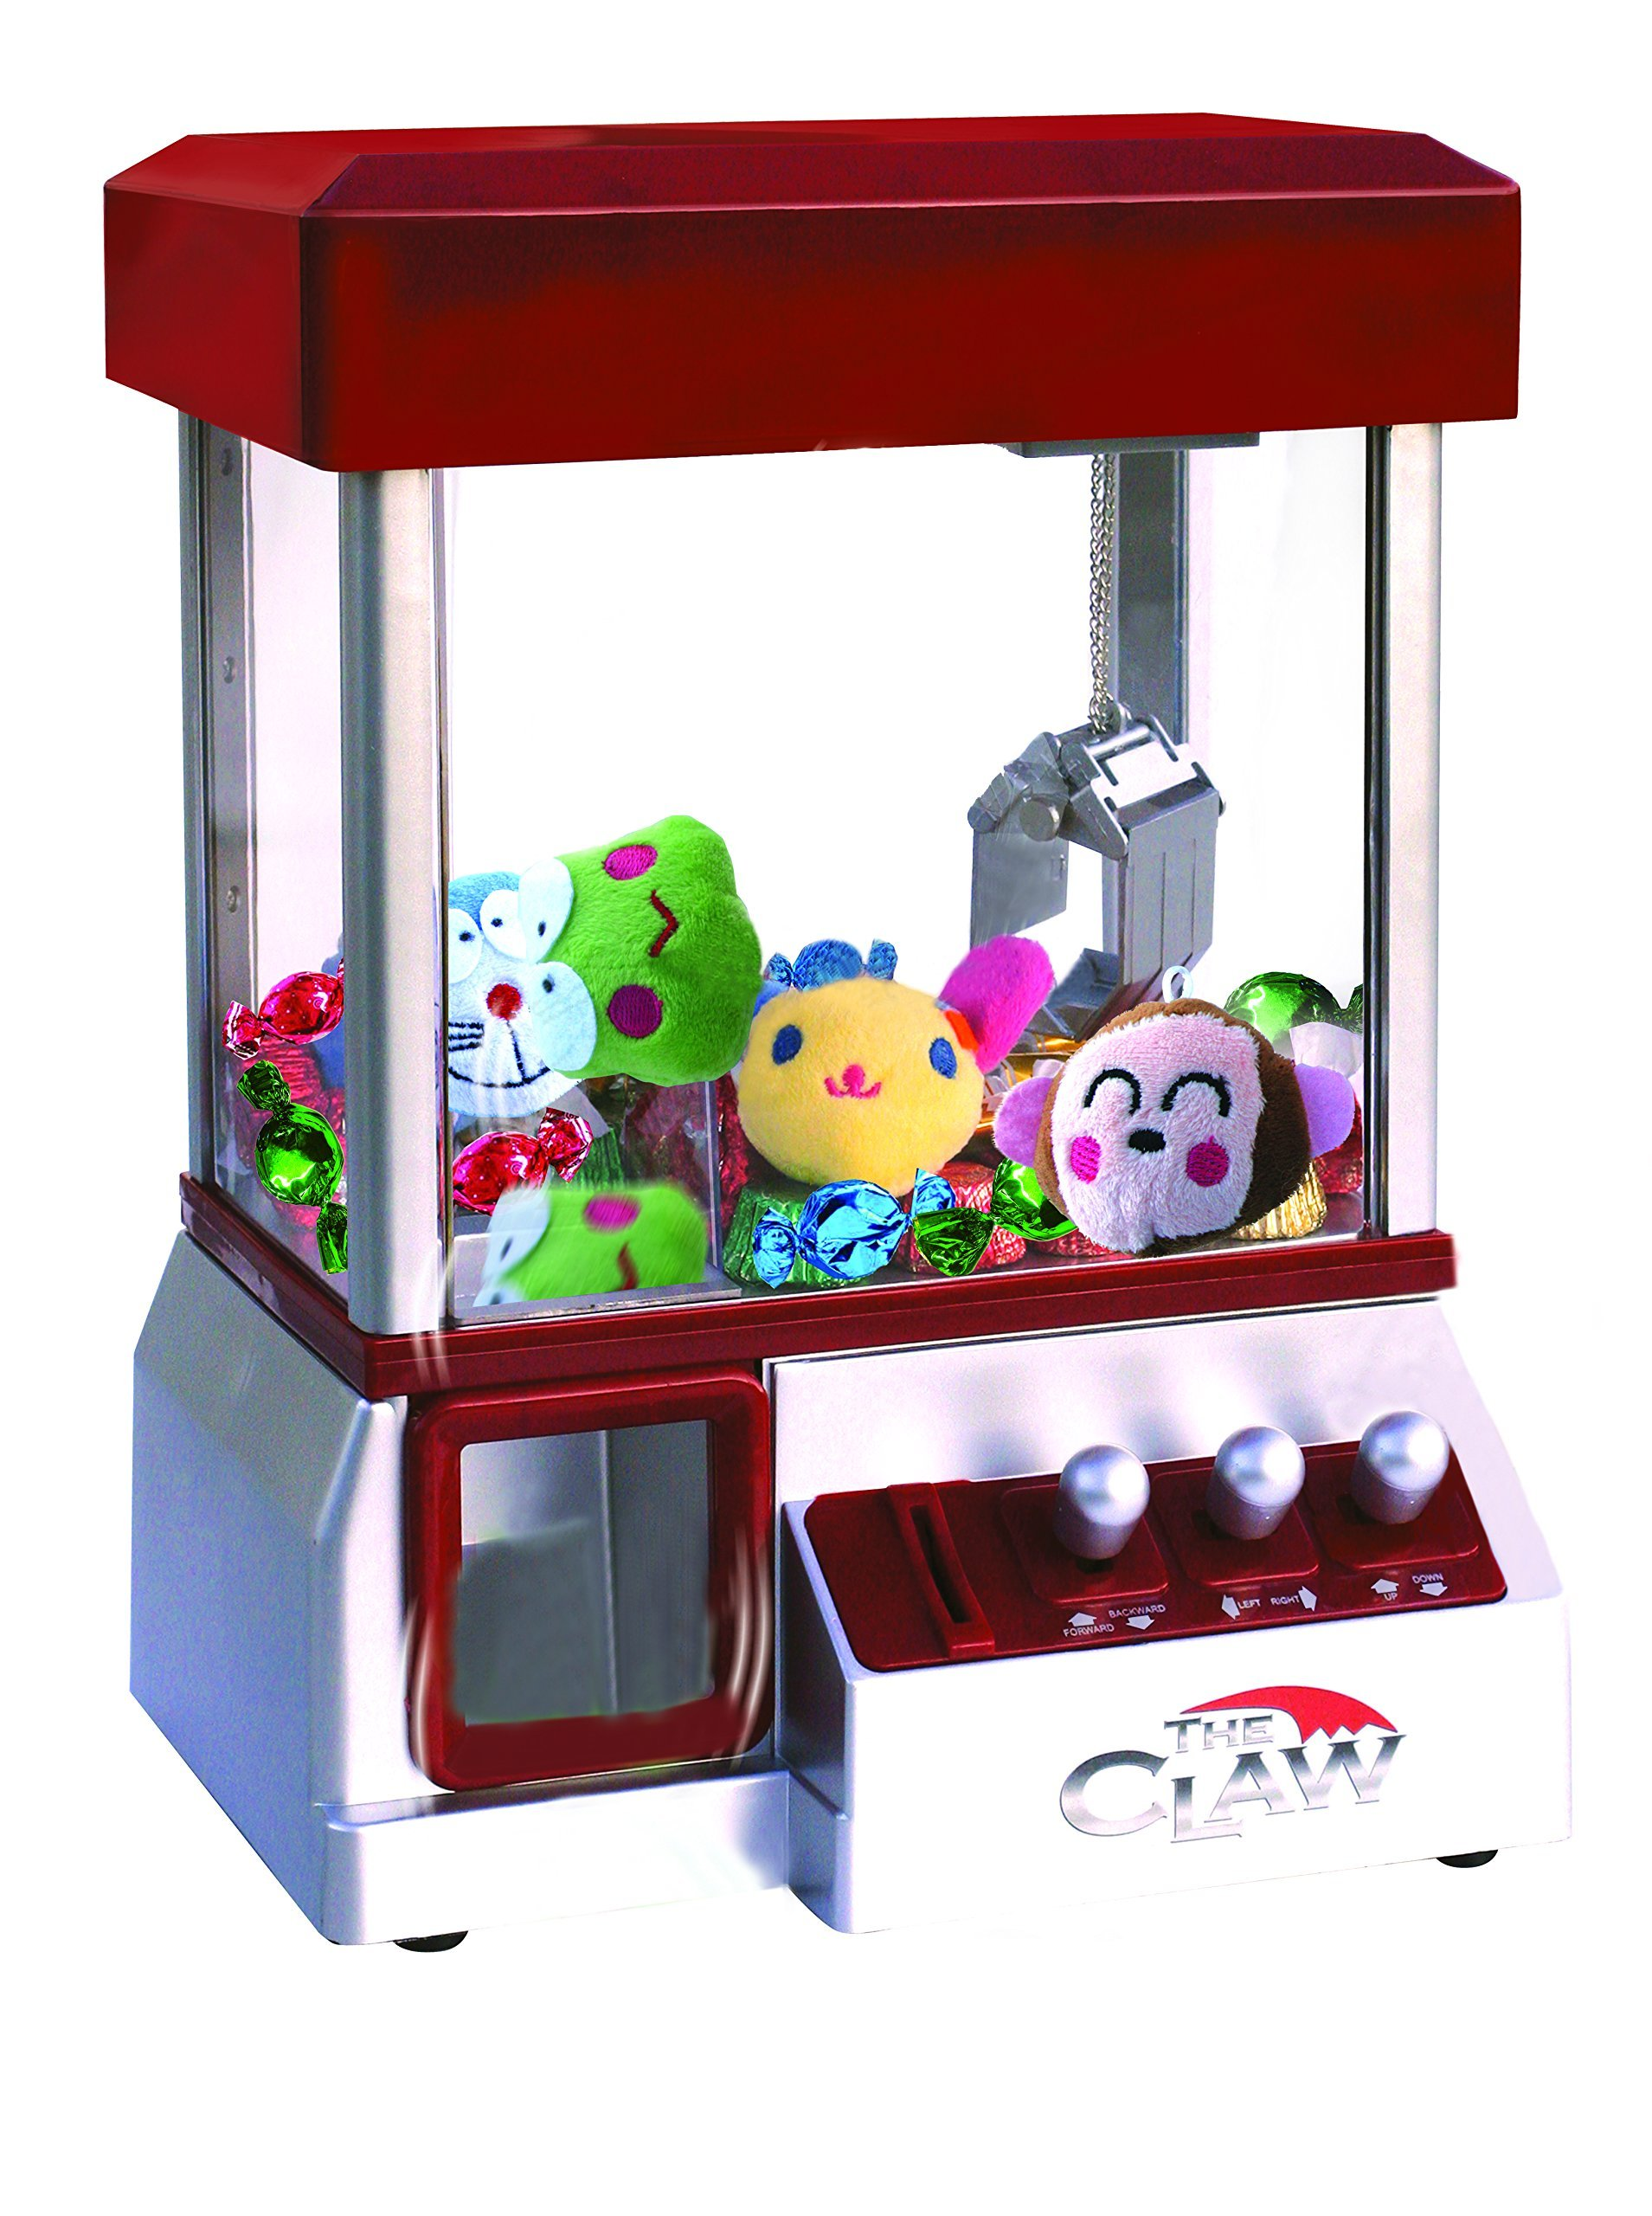 Get Quotations · Etna The Claw Toy Grabber Machine with Sounds and Animal  Plush - Features Electronic Claw Toy 45a1787b9d7f